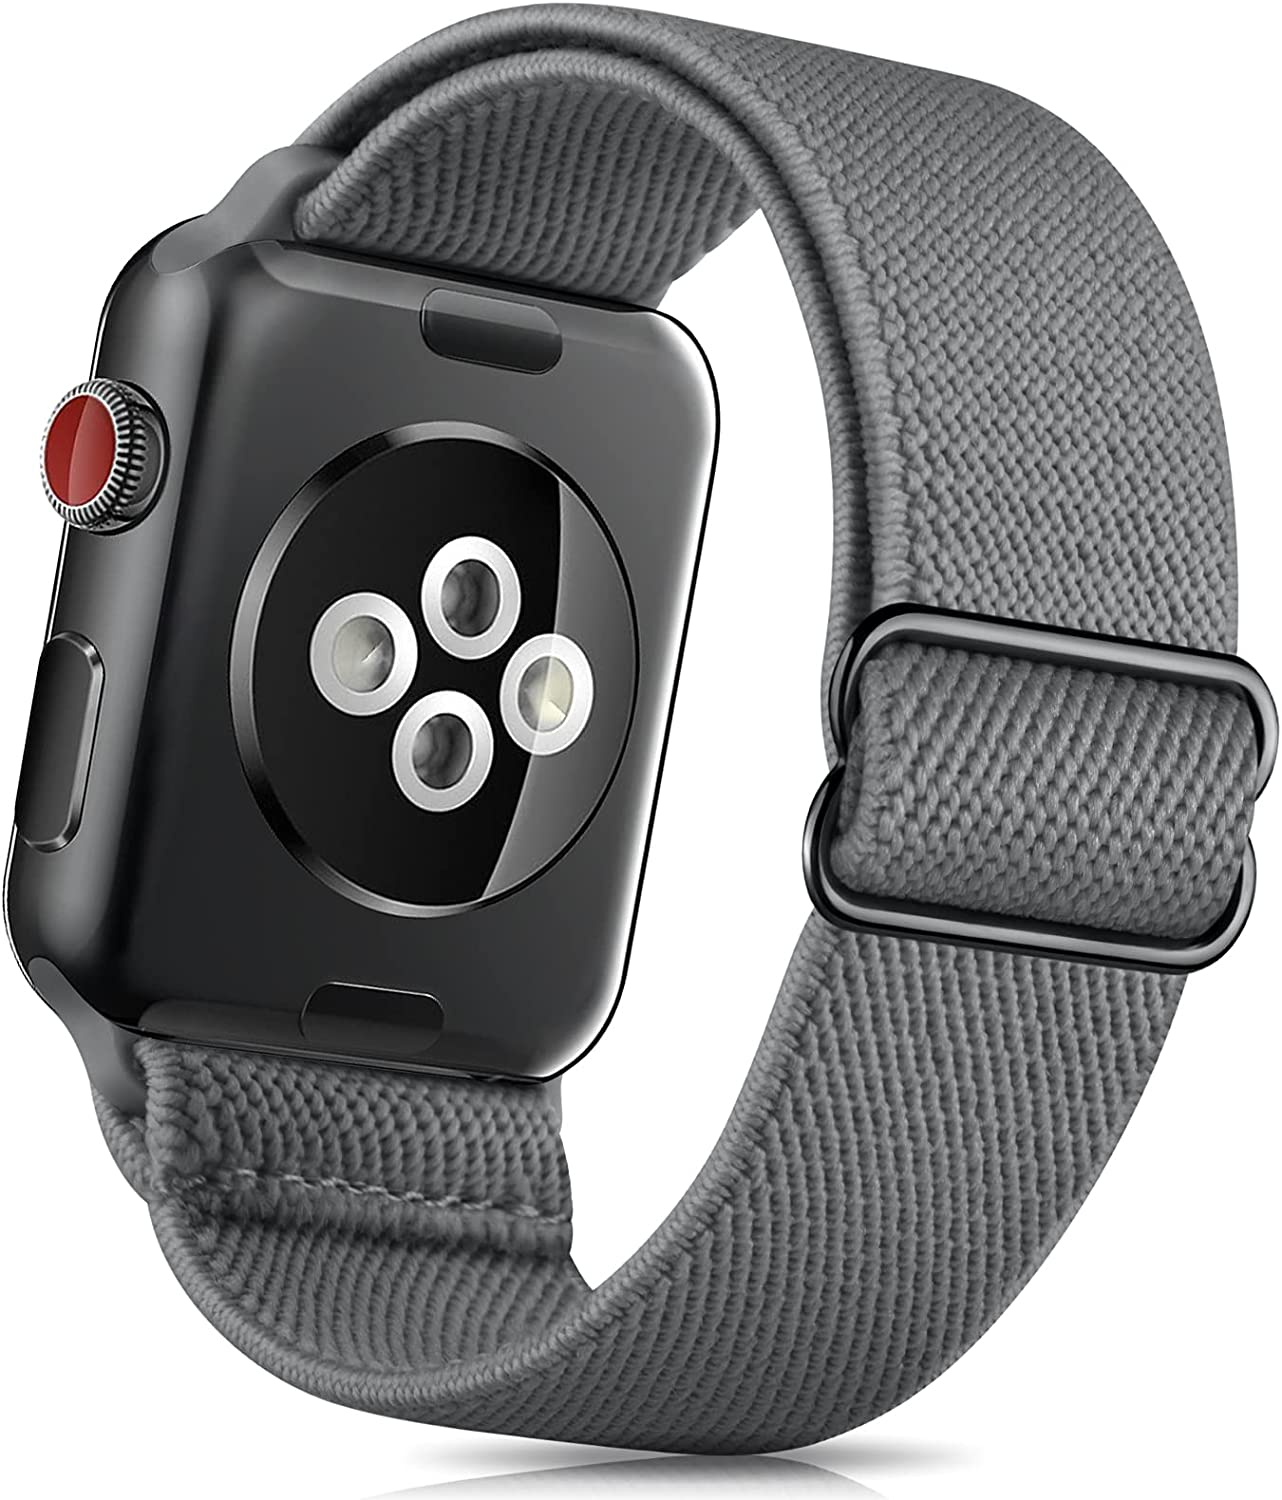 ZALAVER Stretchy Solo Loop Band Compatible with Apple Watch Bands 38mm 40mm 42mm 44mm, Nylon Adjustable Braided Sport Elastics Wristband Compatible with iWatch Series 6/5/4/3/2/1 SE Women Dark Gray